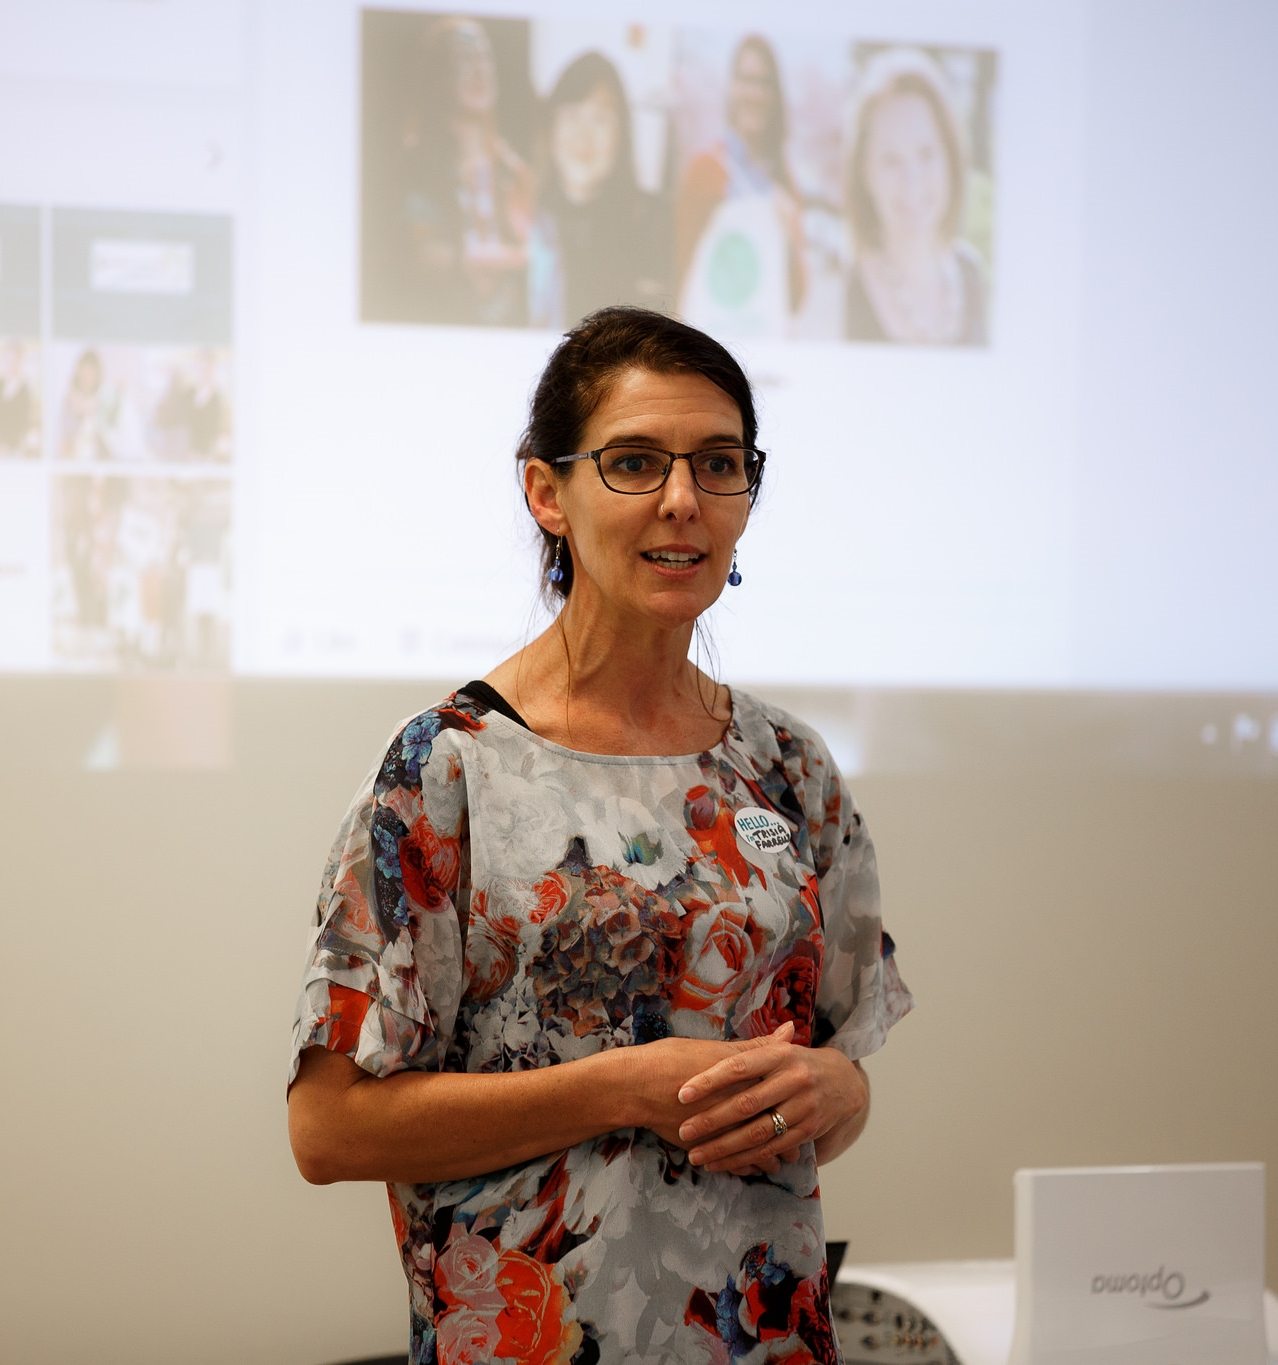 Dr Trisia Farrelly at the Single Use Plastics Forum at Massey University in December 2015.  Photographer: Sy Taffel.